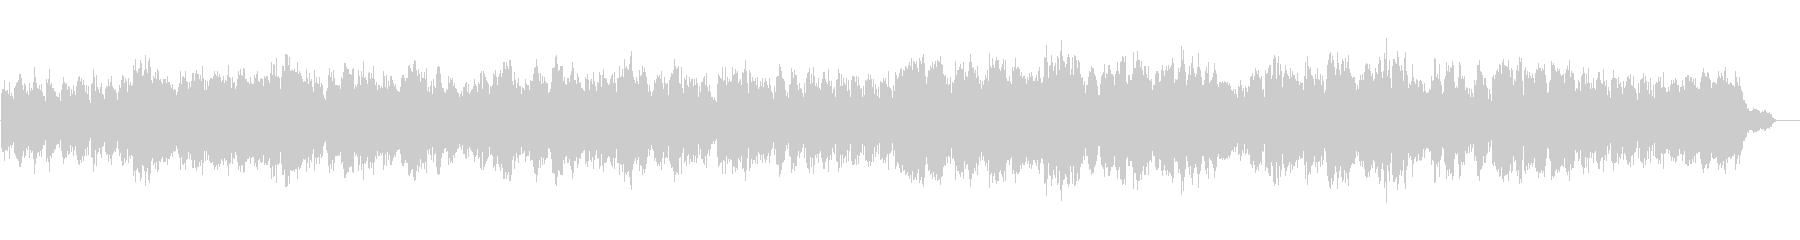 Schubert Ave Maria Flute cover's unreproduced waveform